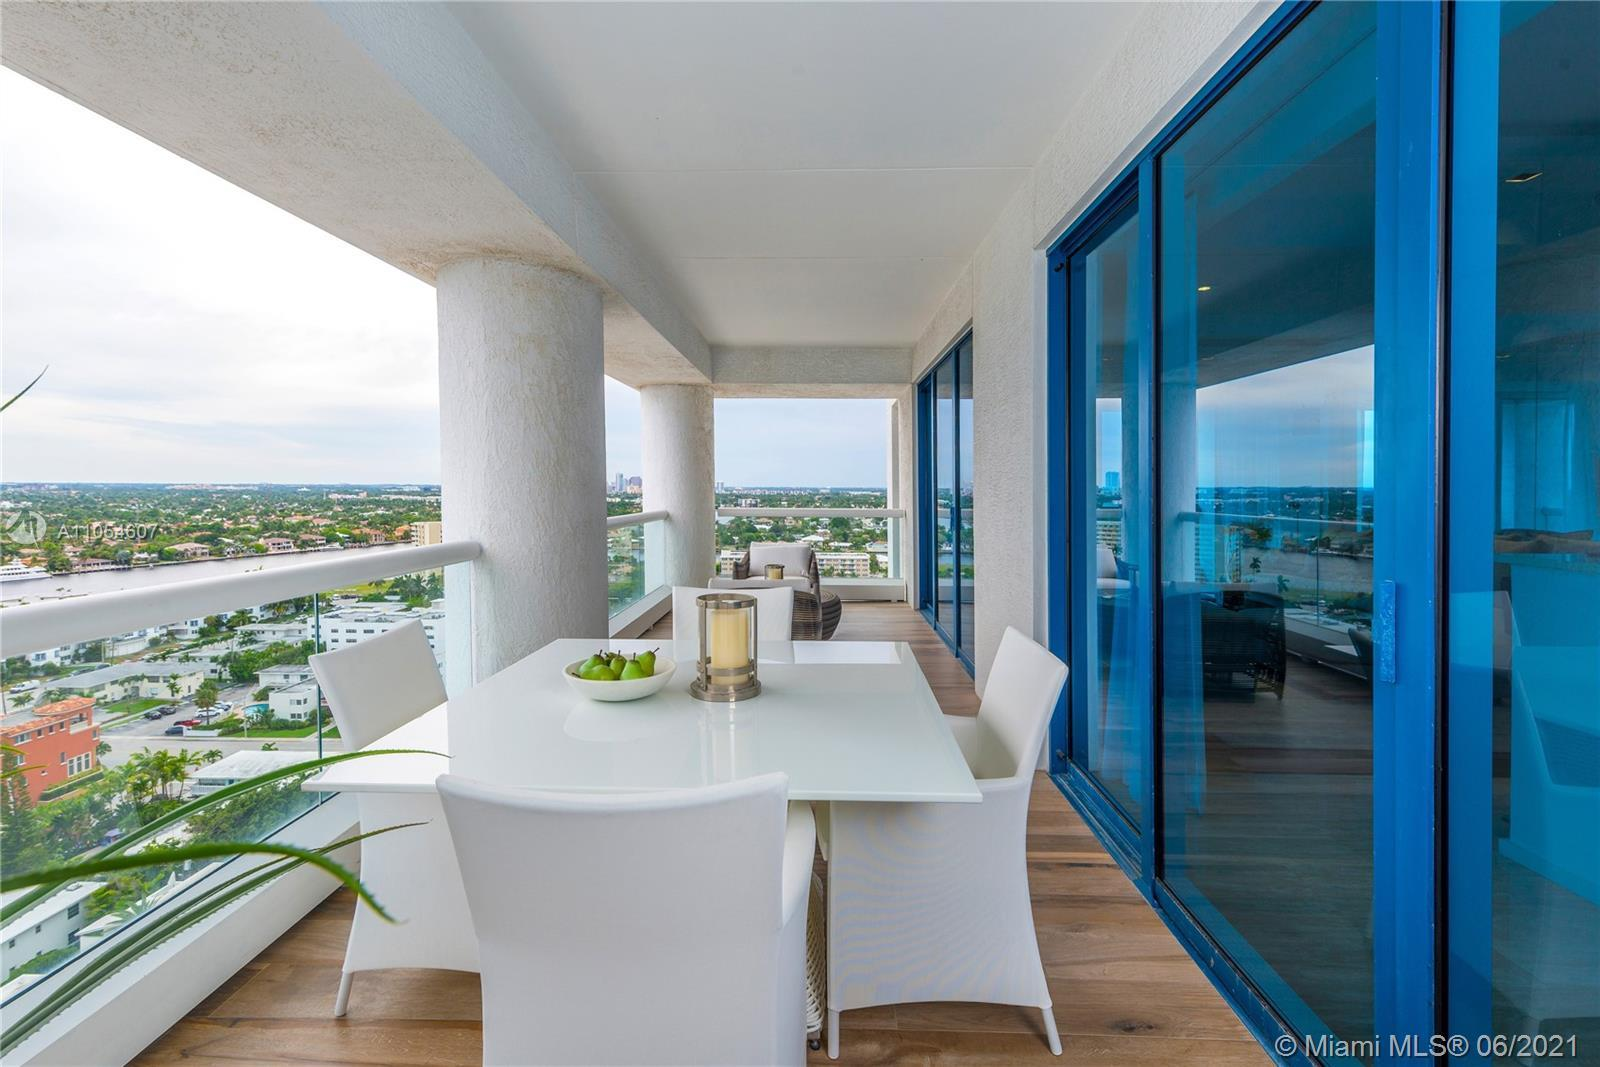 Amazing SW corner 2/2 with a huge terrace! Completely furnished and finished, this unit at The Ocean